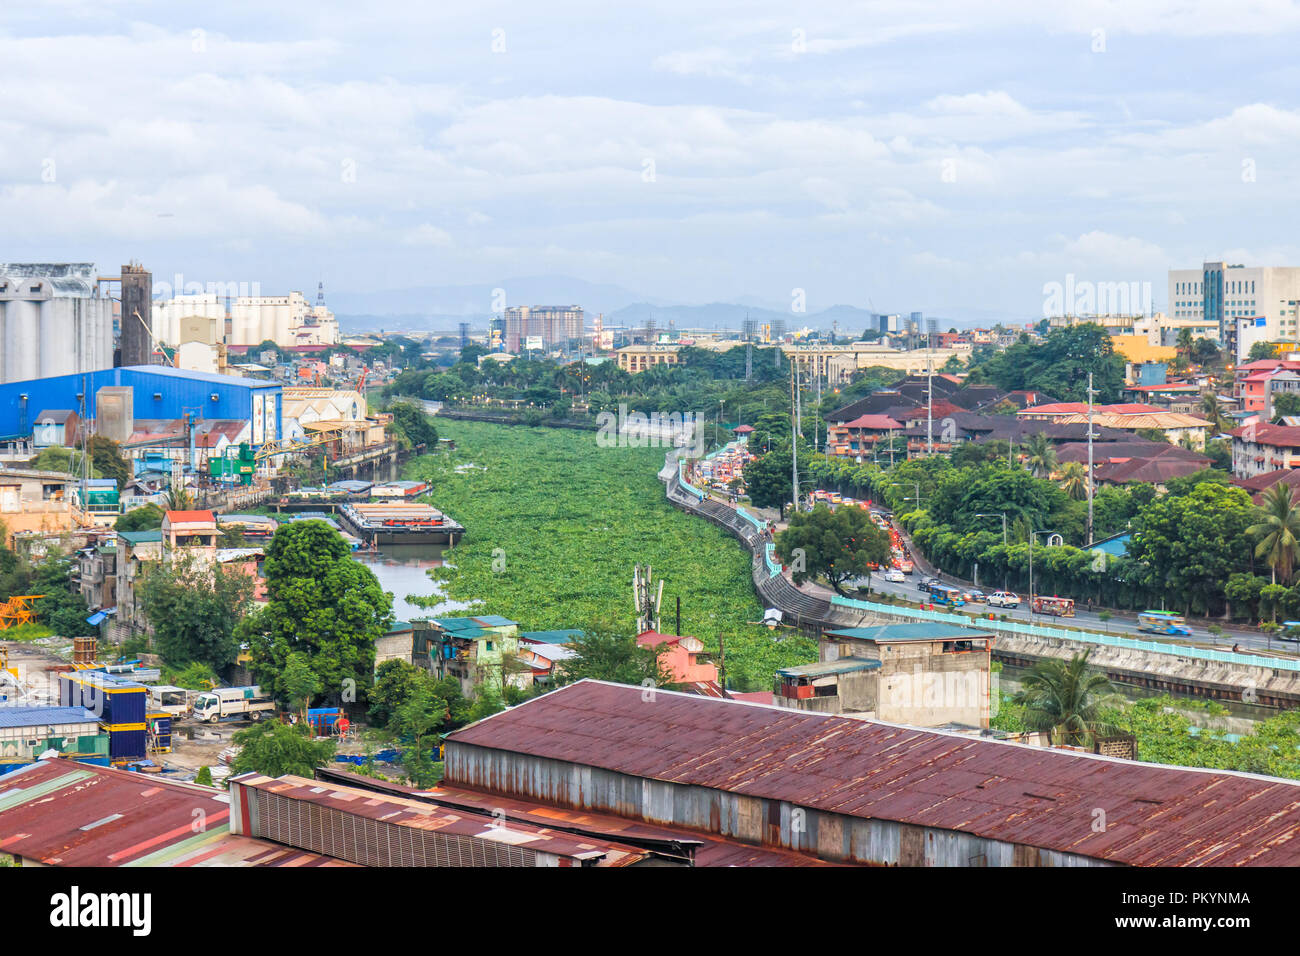 Mandaluyong, Philippines - July 10, 2018: View Of Pasig River In Mandaluyong - Stock Image